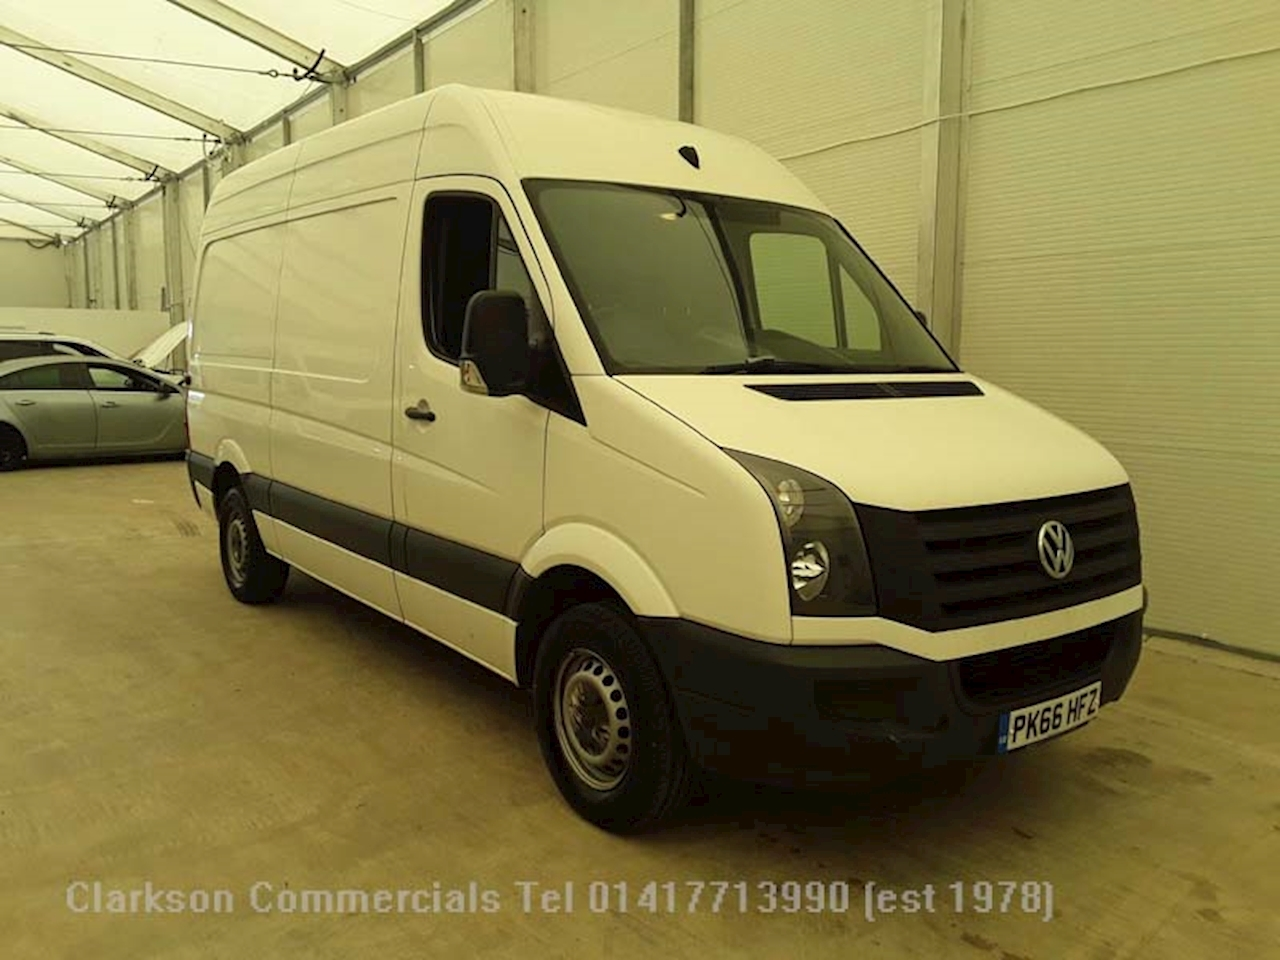 Volkswagen Crafter CR35 2.0TDi Medium wheelbase (L2H2) 2.0 4dr Medium wheelbase Manual Diesel